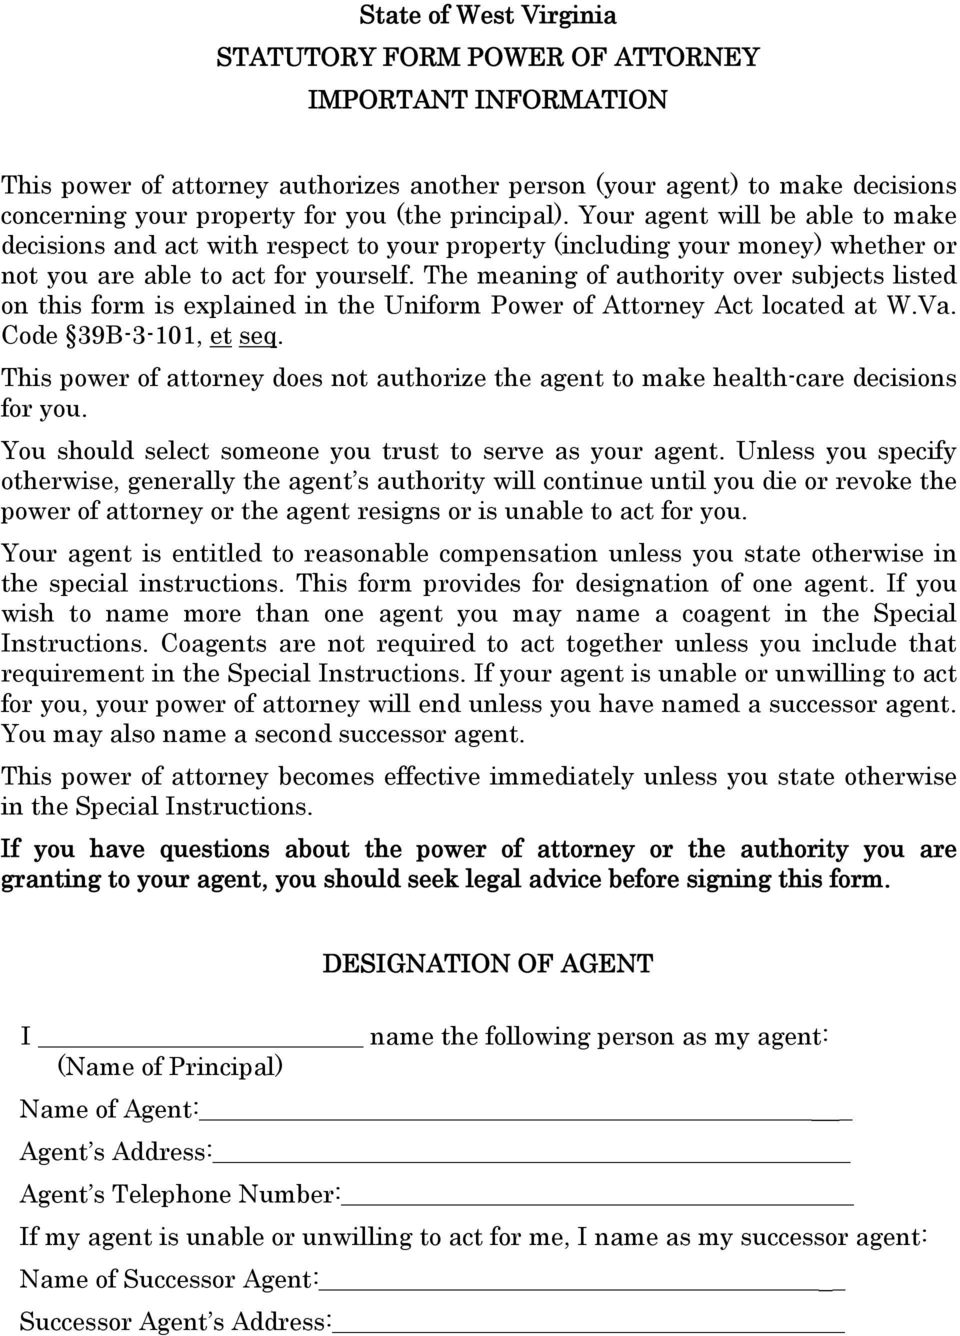 State Of West Virginia Statutory Form Power Of Attorney Important